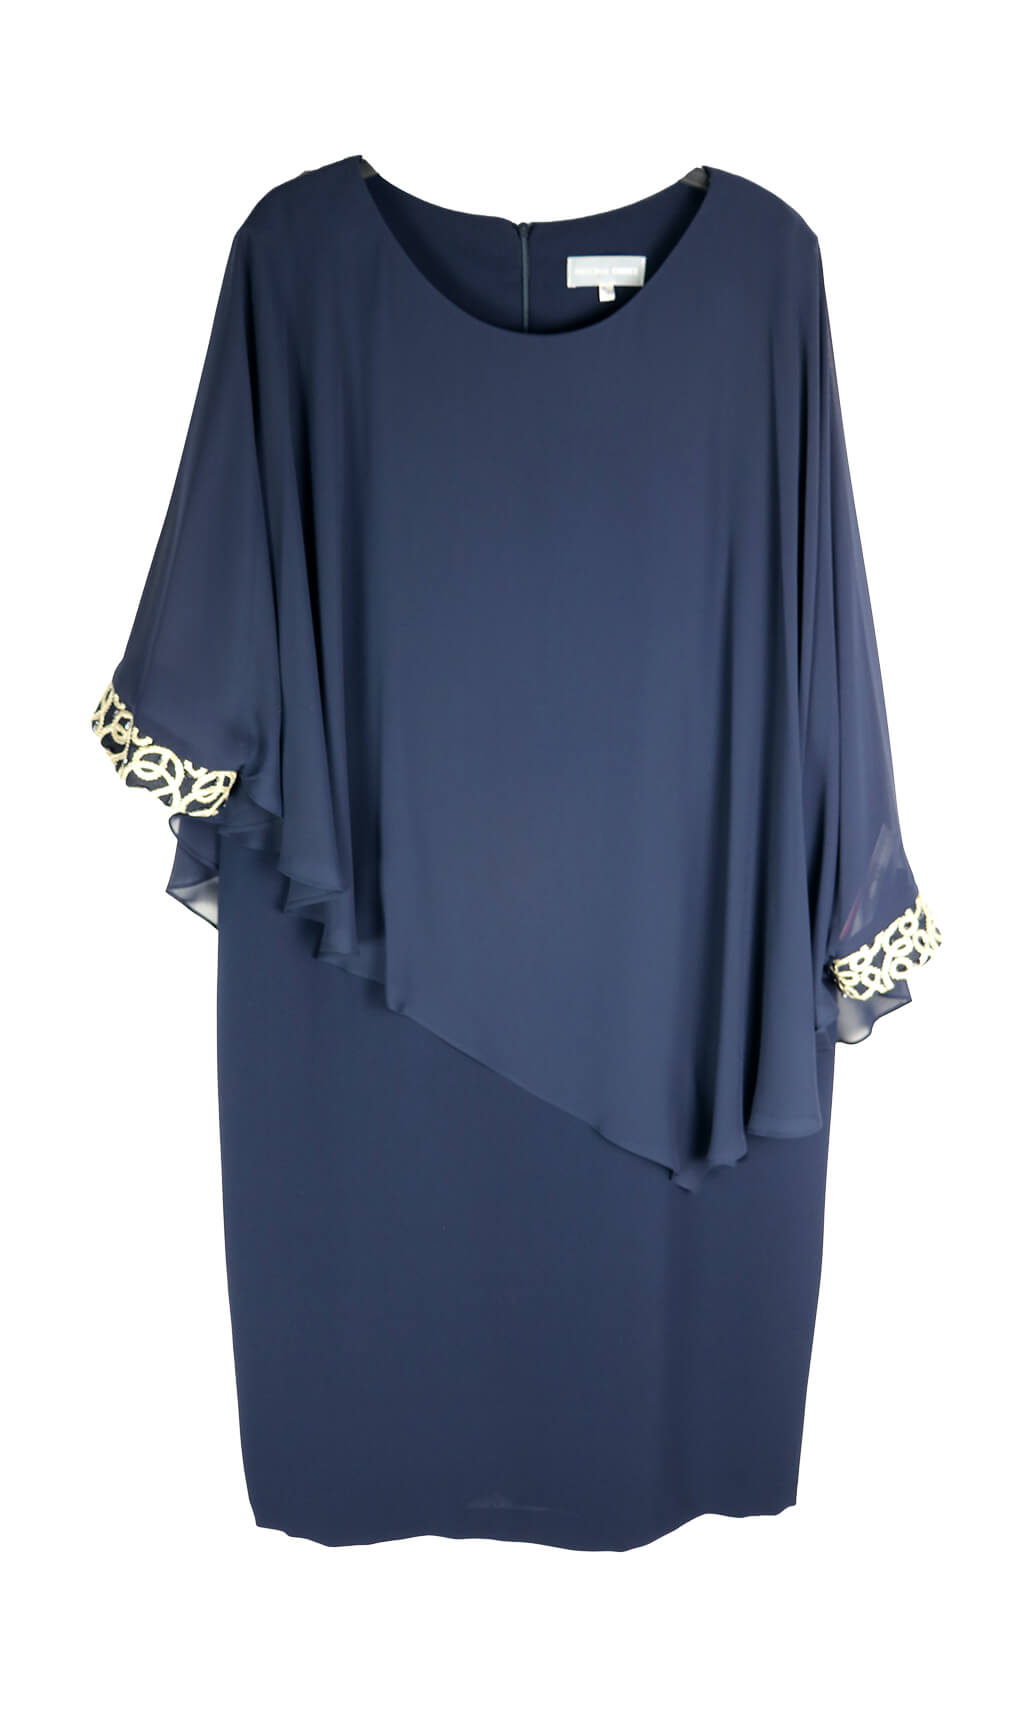 PCAW19110 Navy Personal Choice Dress Chiffon Cape & Cuffs - Fab Frocks